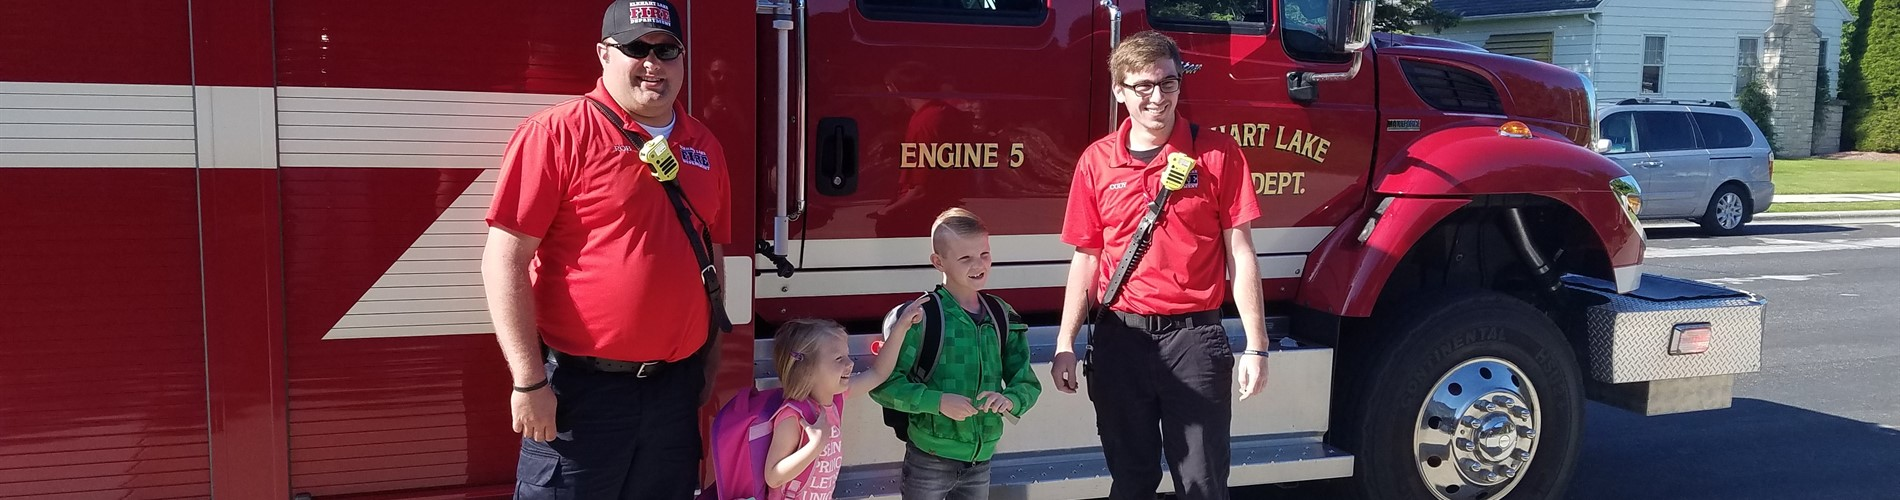 Fire Prevention - Ride to School on a Firetruck